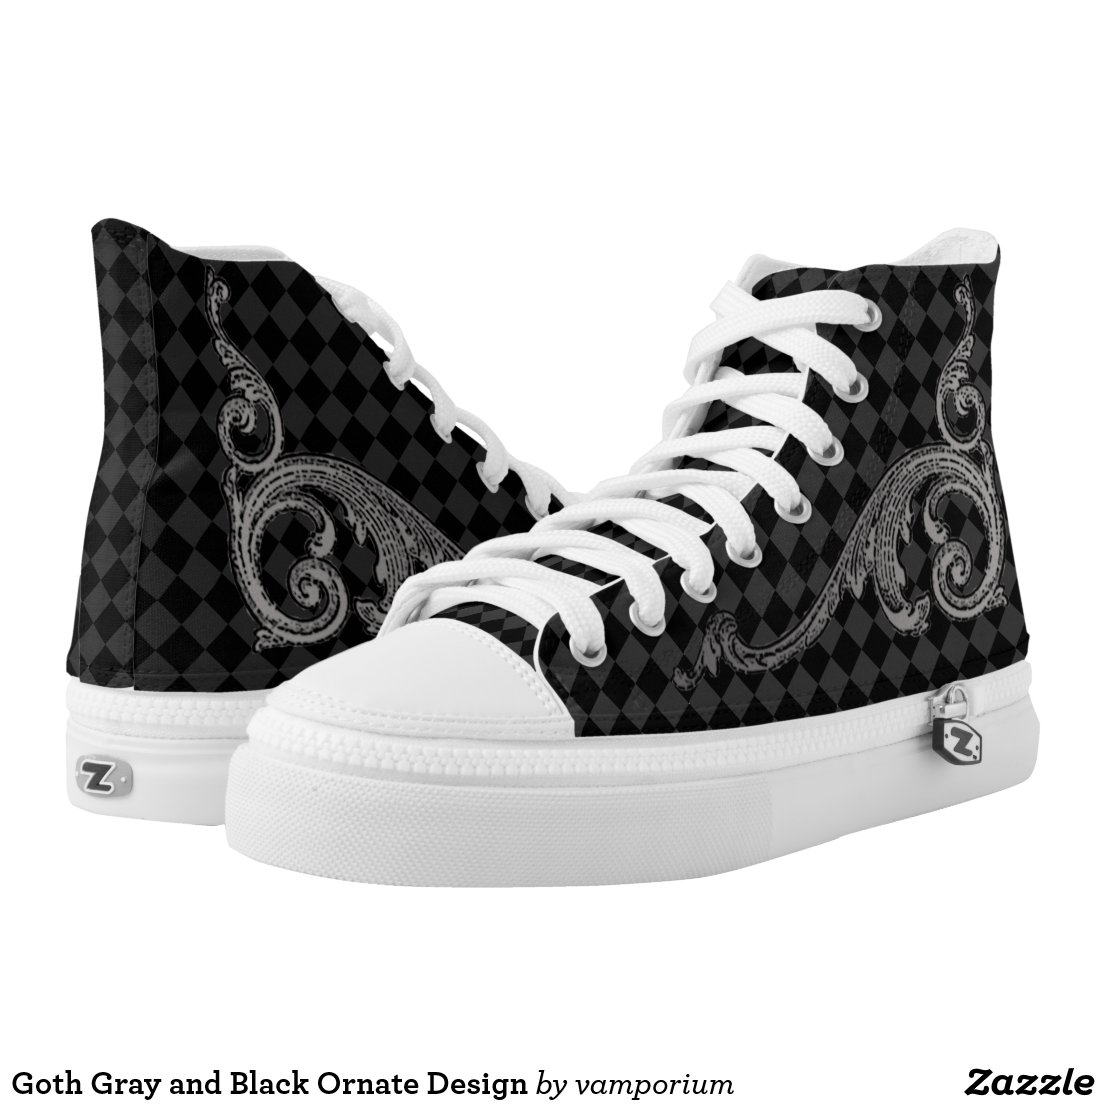 Goth Gray and Black Ornate Design High-Top Sneakers